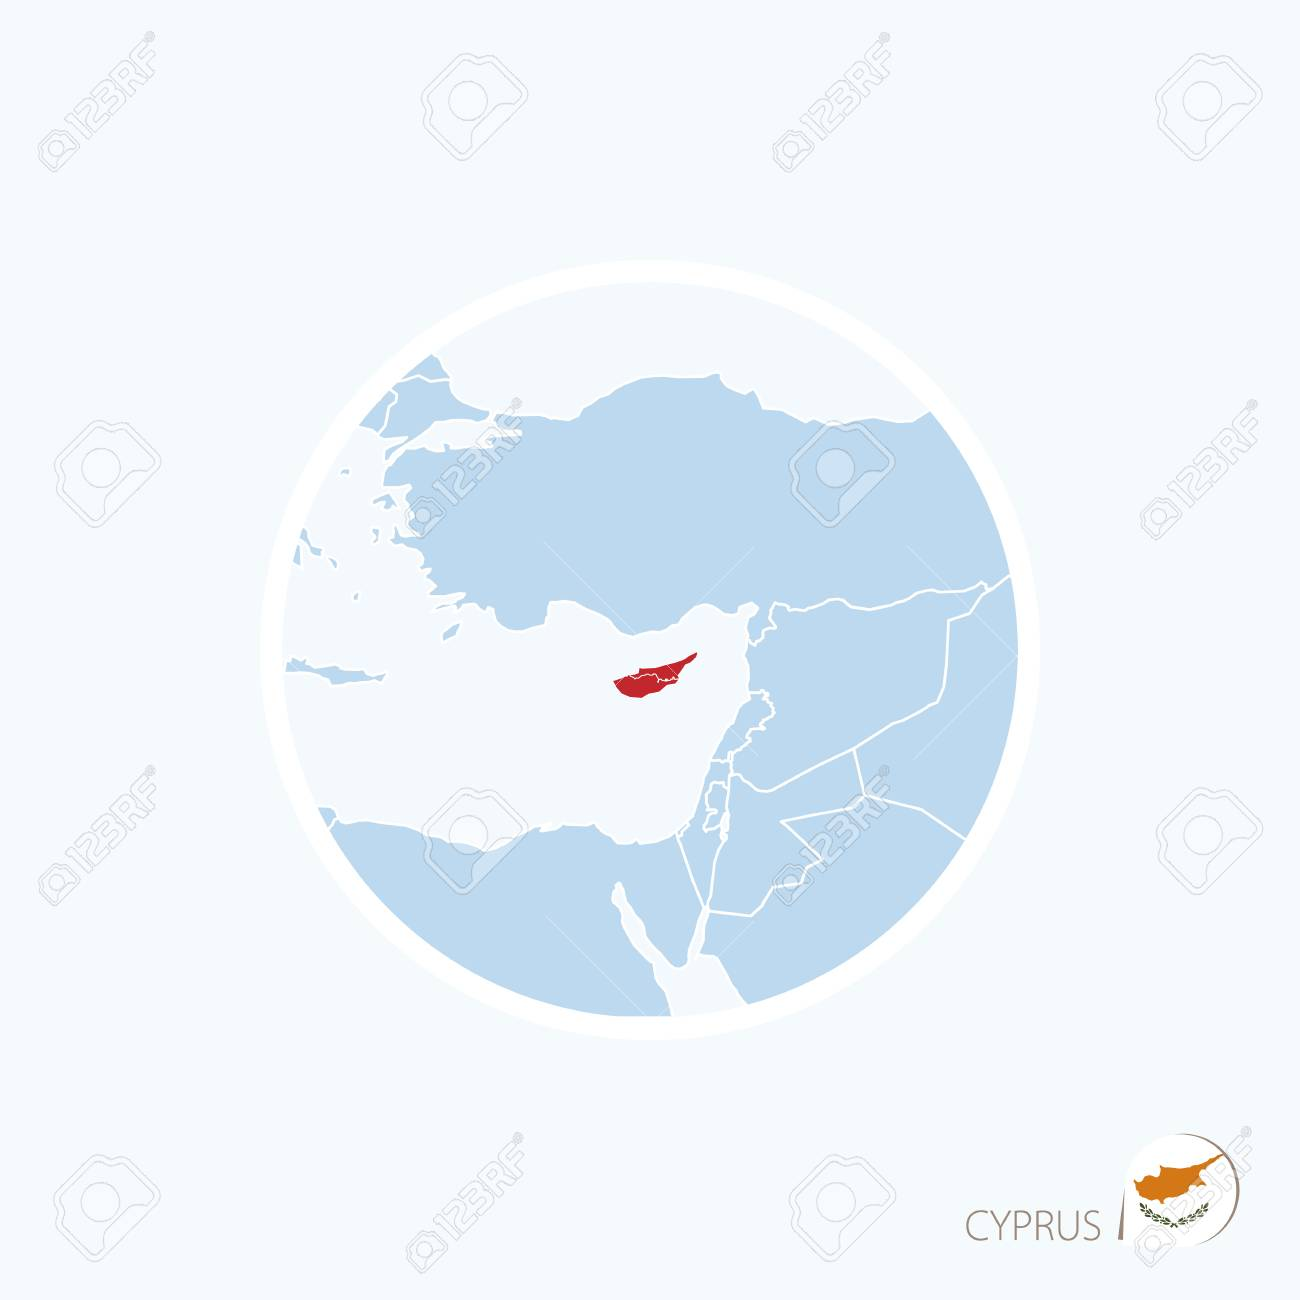 Map Icon Of Cyprus Blue Map Of Europe With Highlighted Cyprus